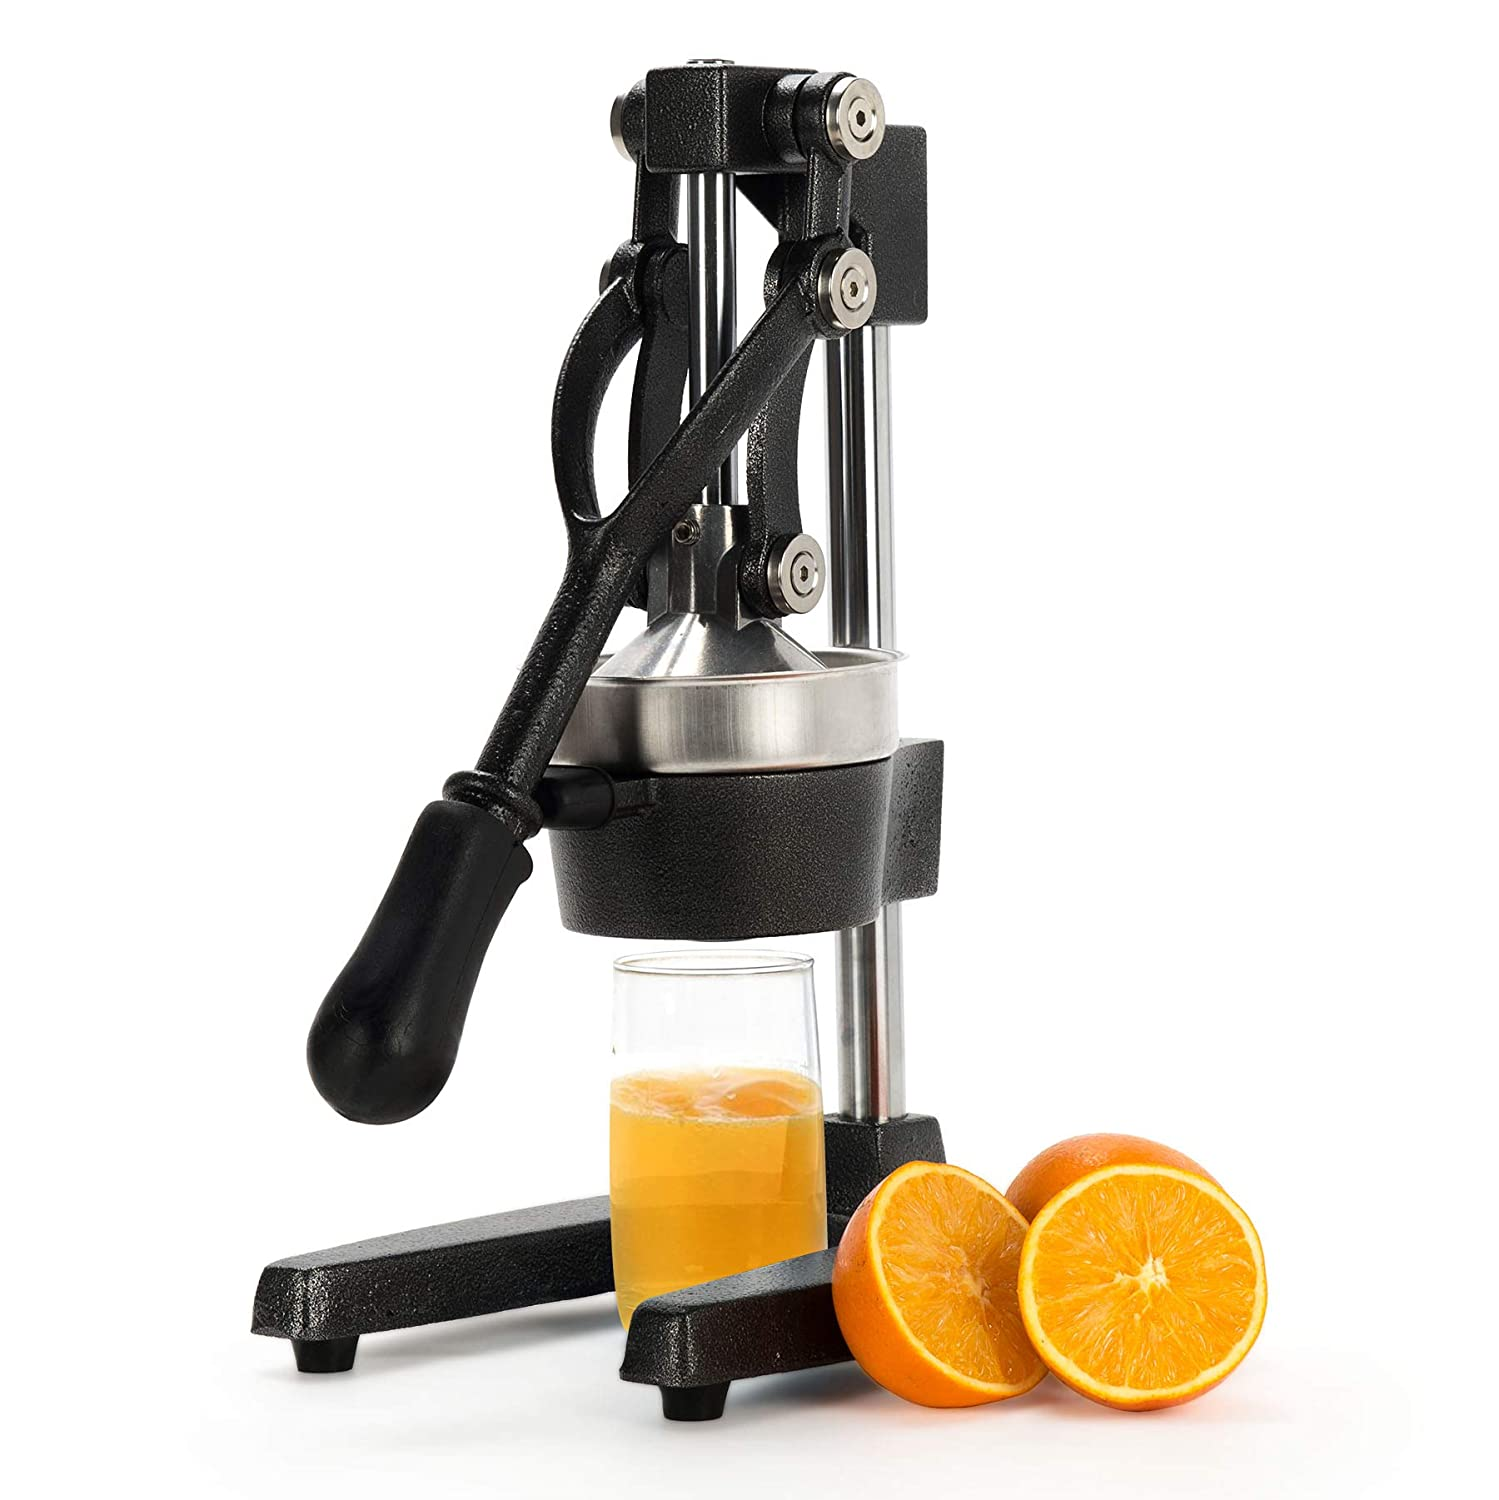 CO-Z Commercial Grade Citrus Juicer Hand Press Manual Fruit Juicer Juice Squeezer Citrus Orange Lemon Pomegranate (Black)